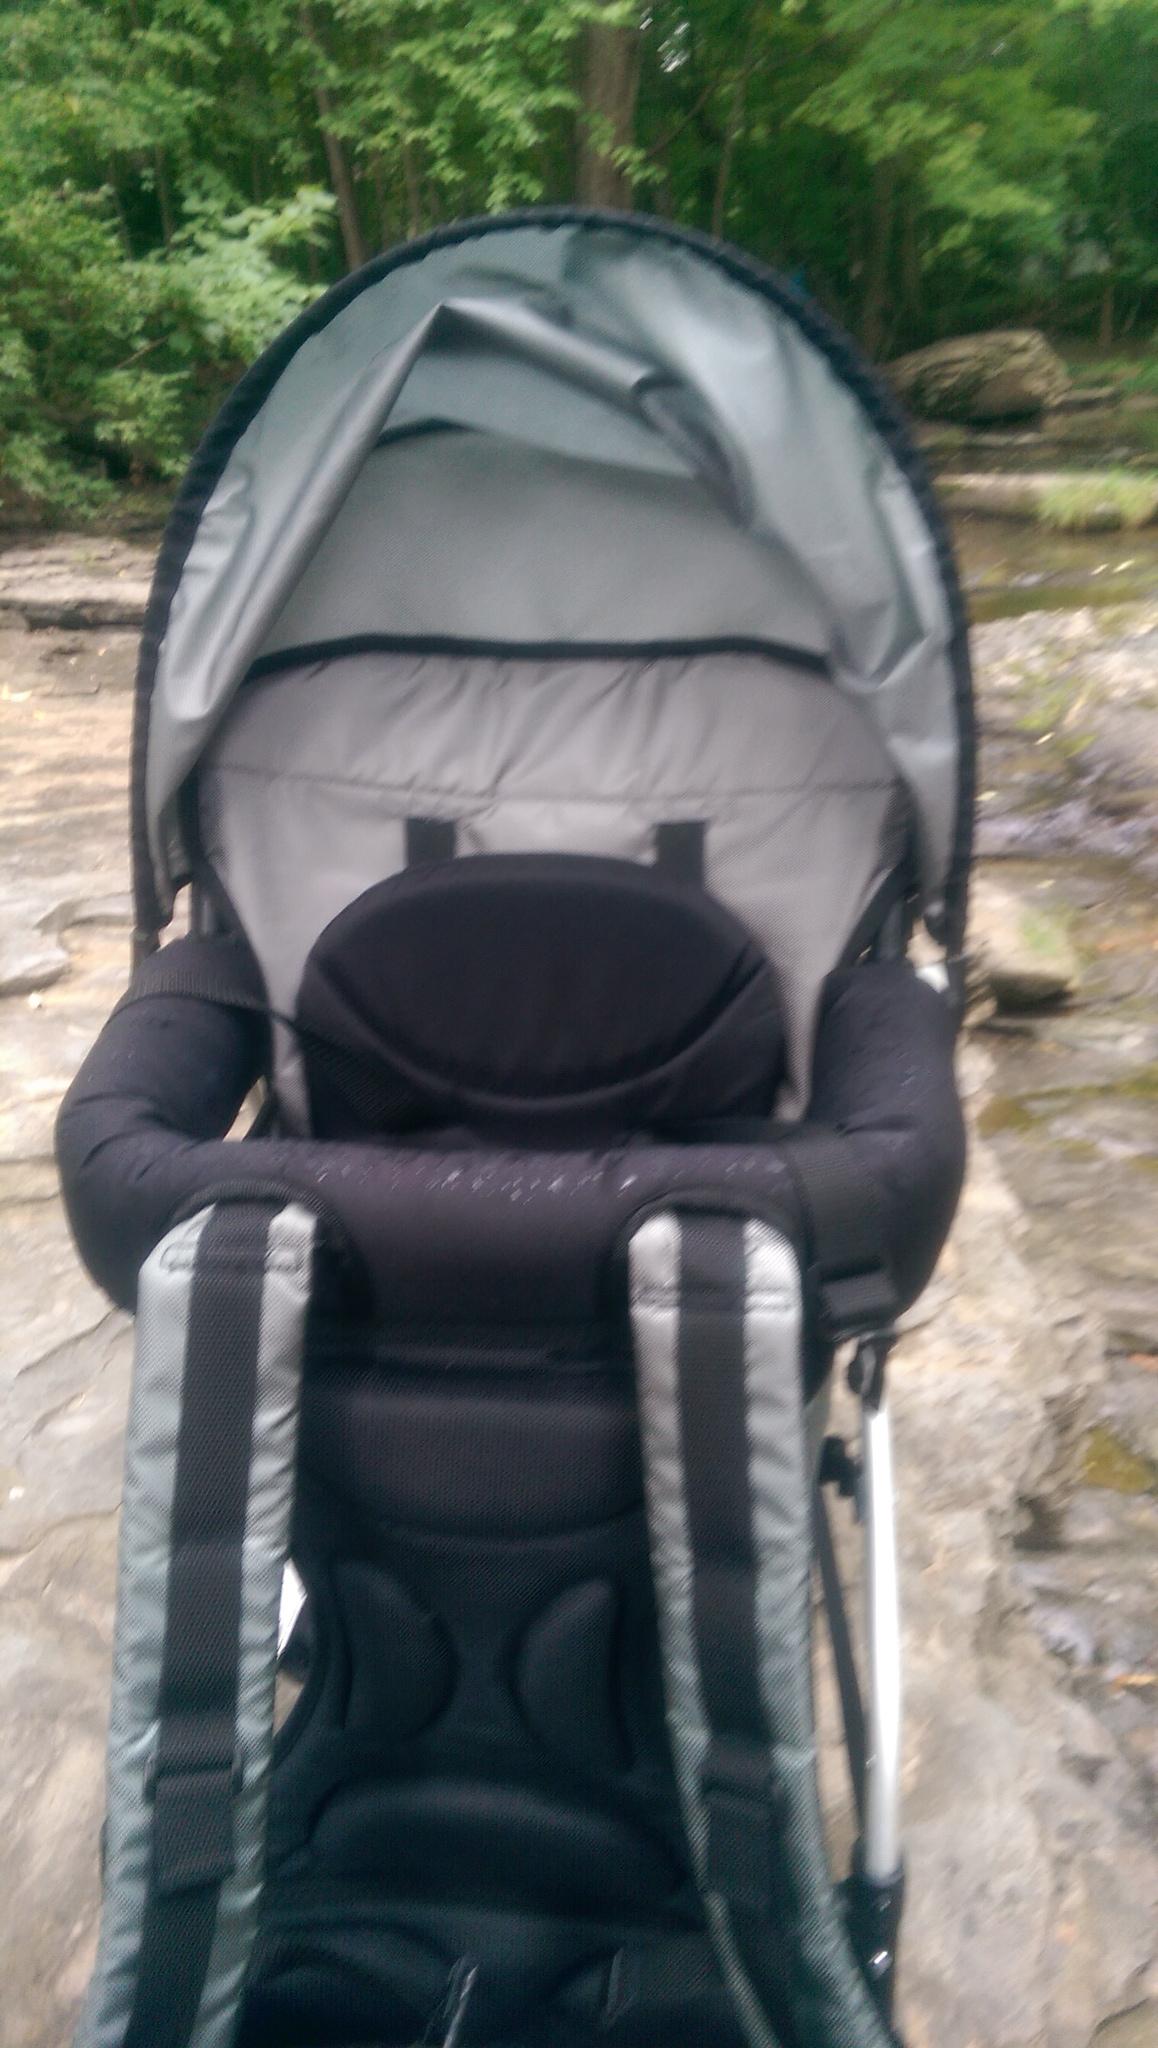 Chicco Smart Support Backpack Review: How Active Families Get Outdoors!